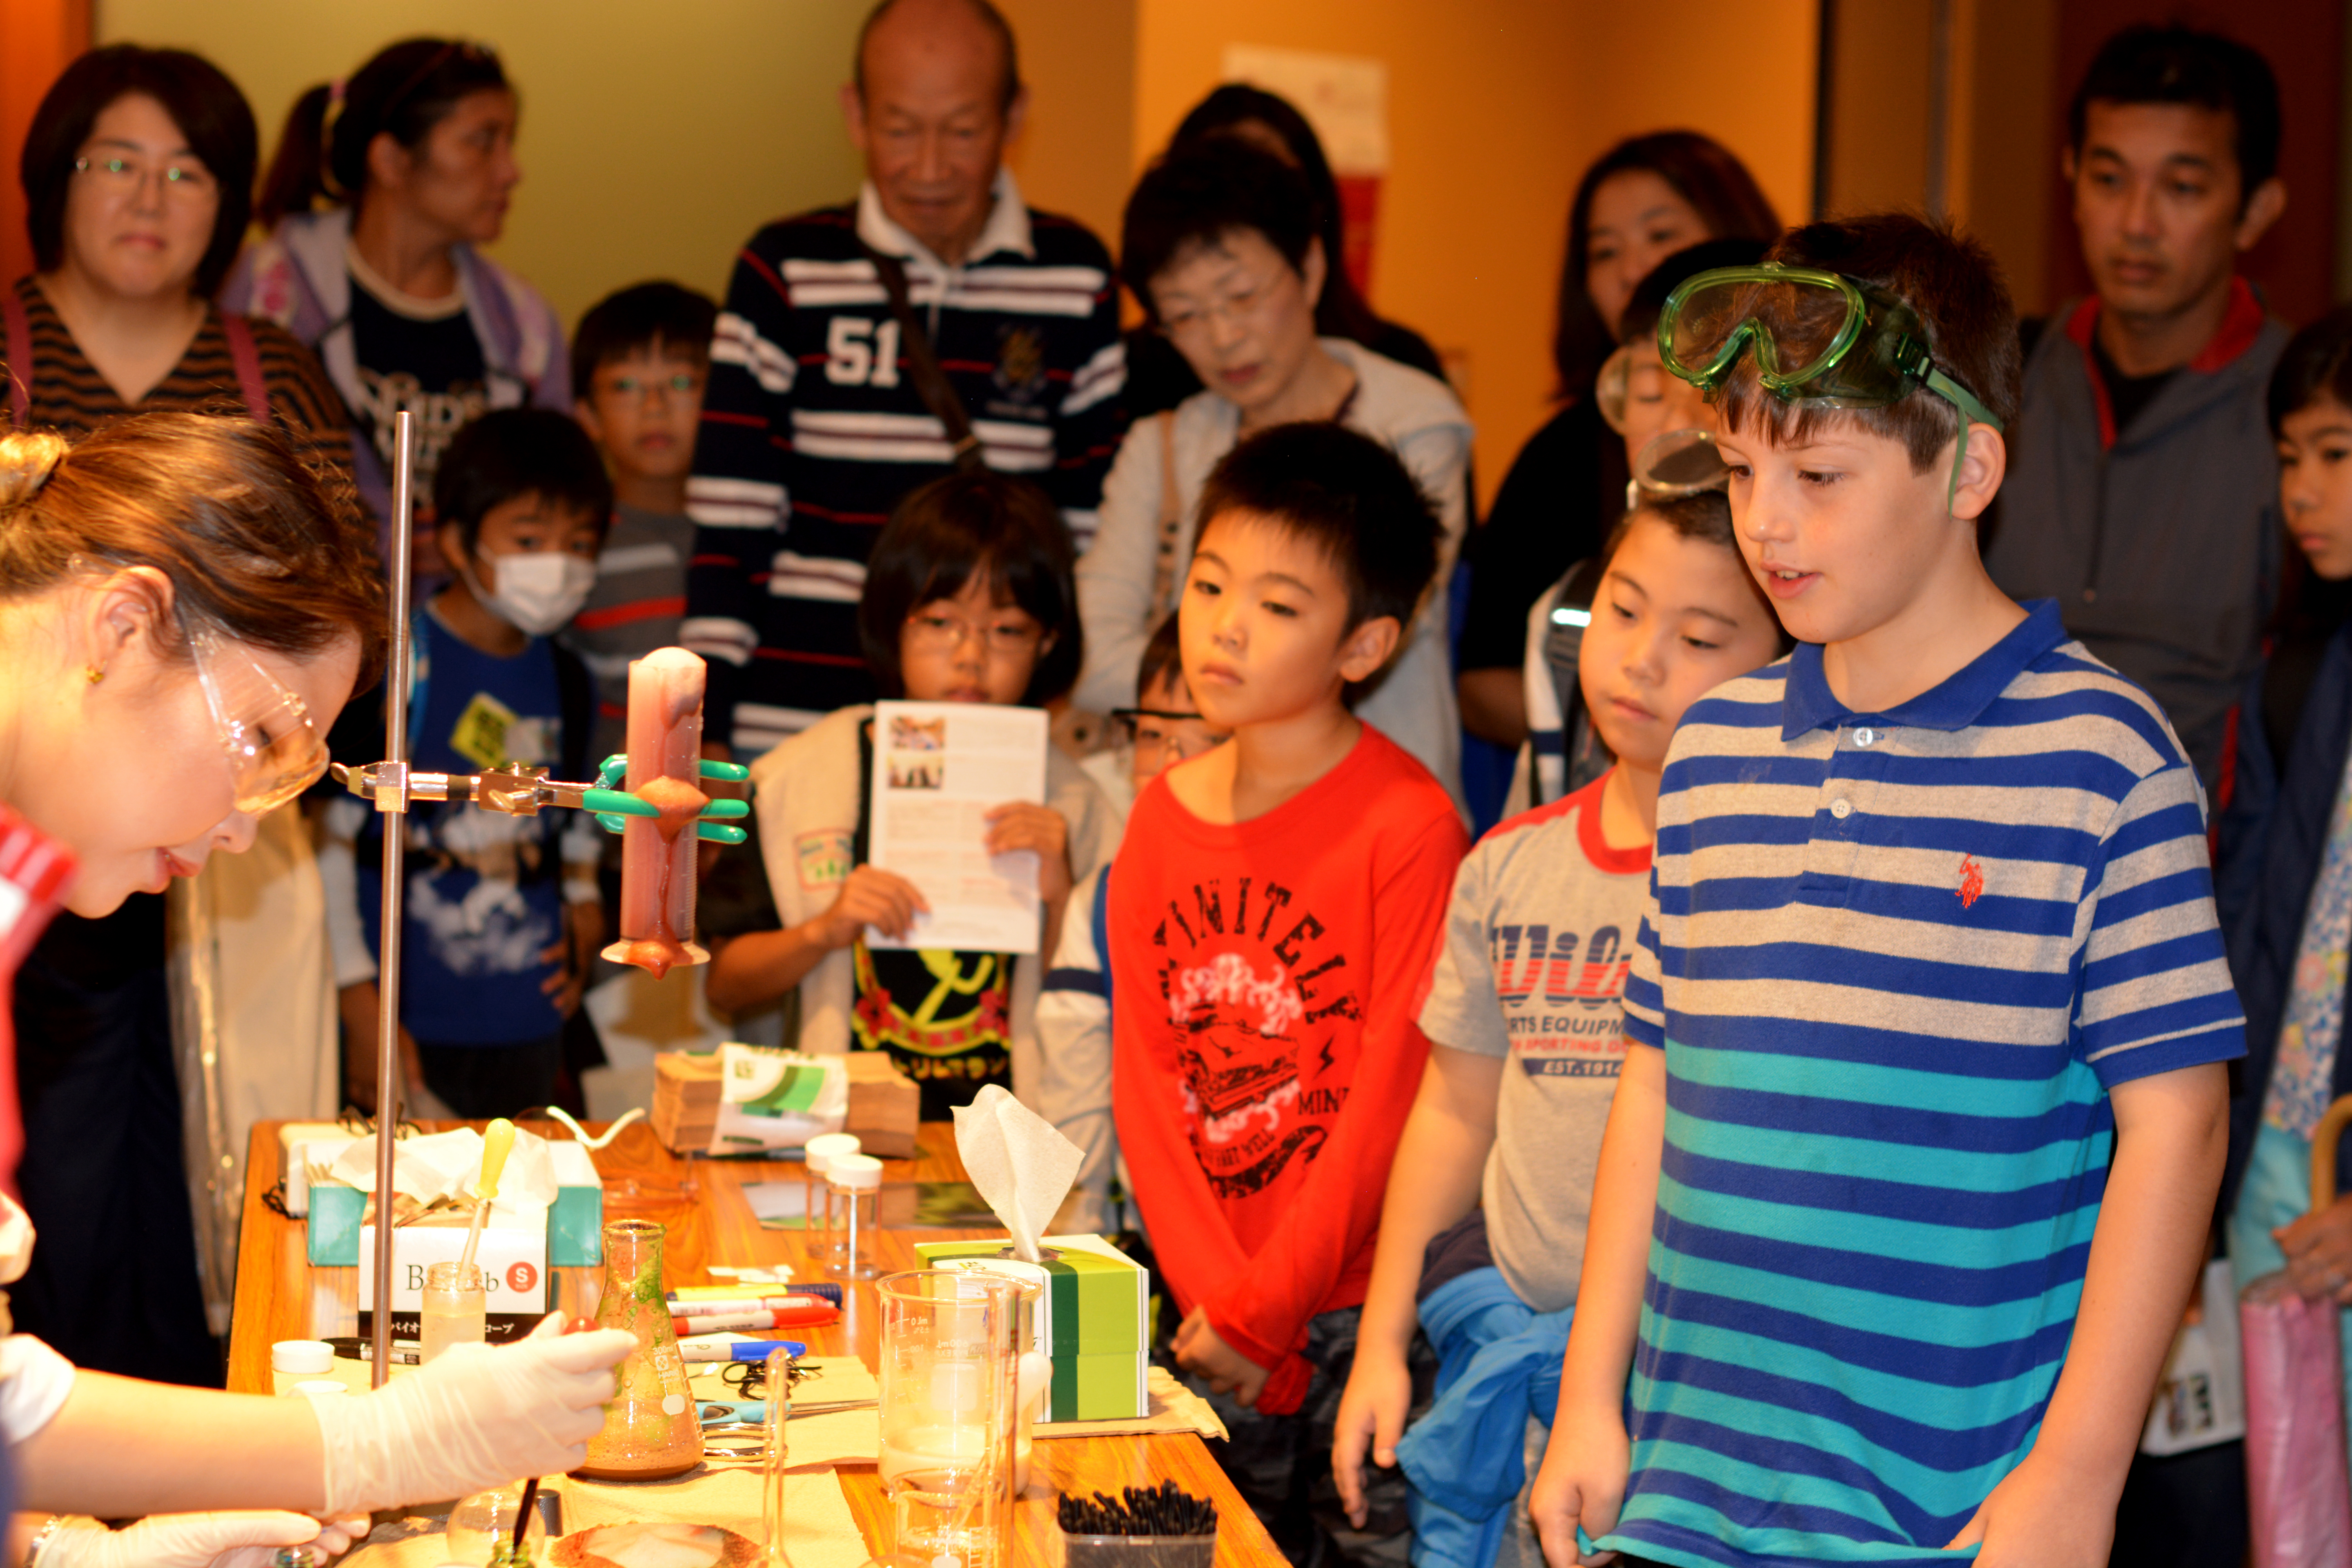 """The """"Chemical Demonstrations"""" booth appeared to be very popular, entrancing both adults and children alike."""